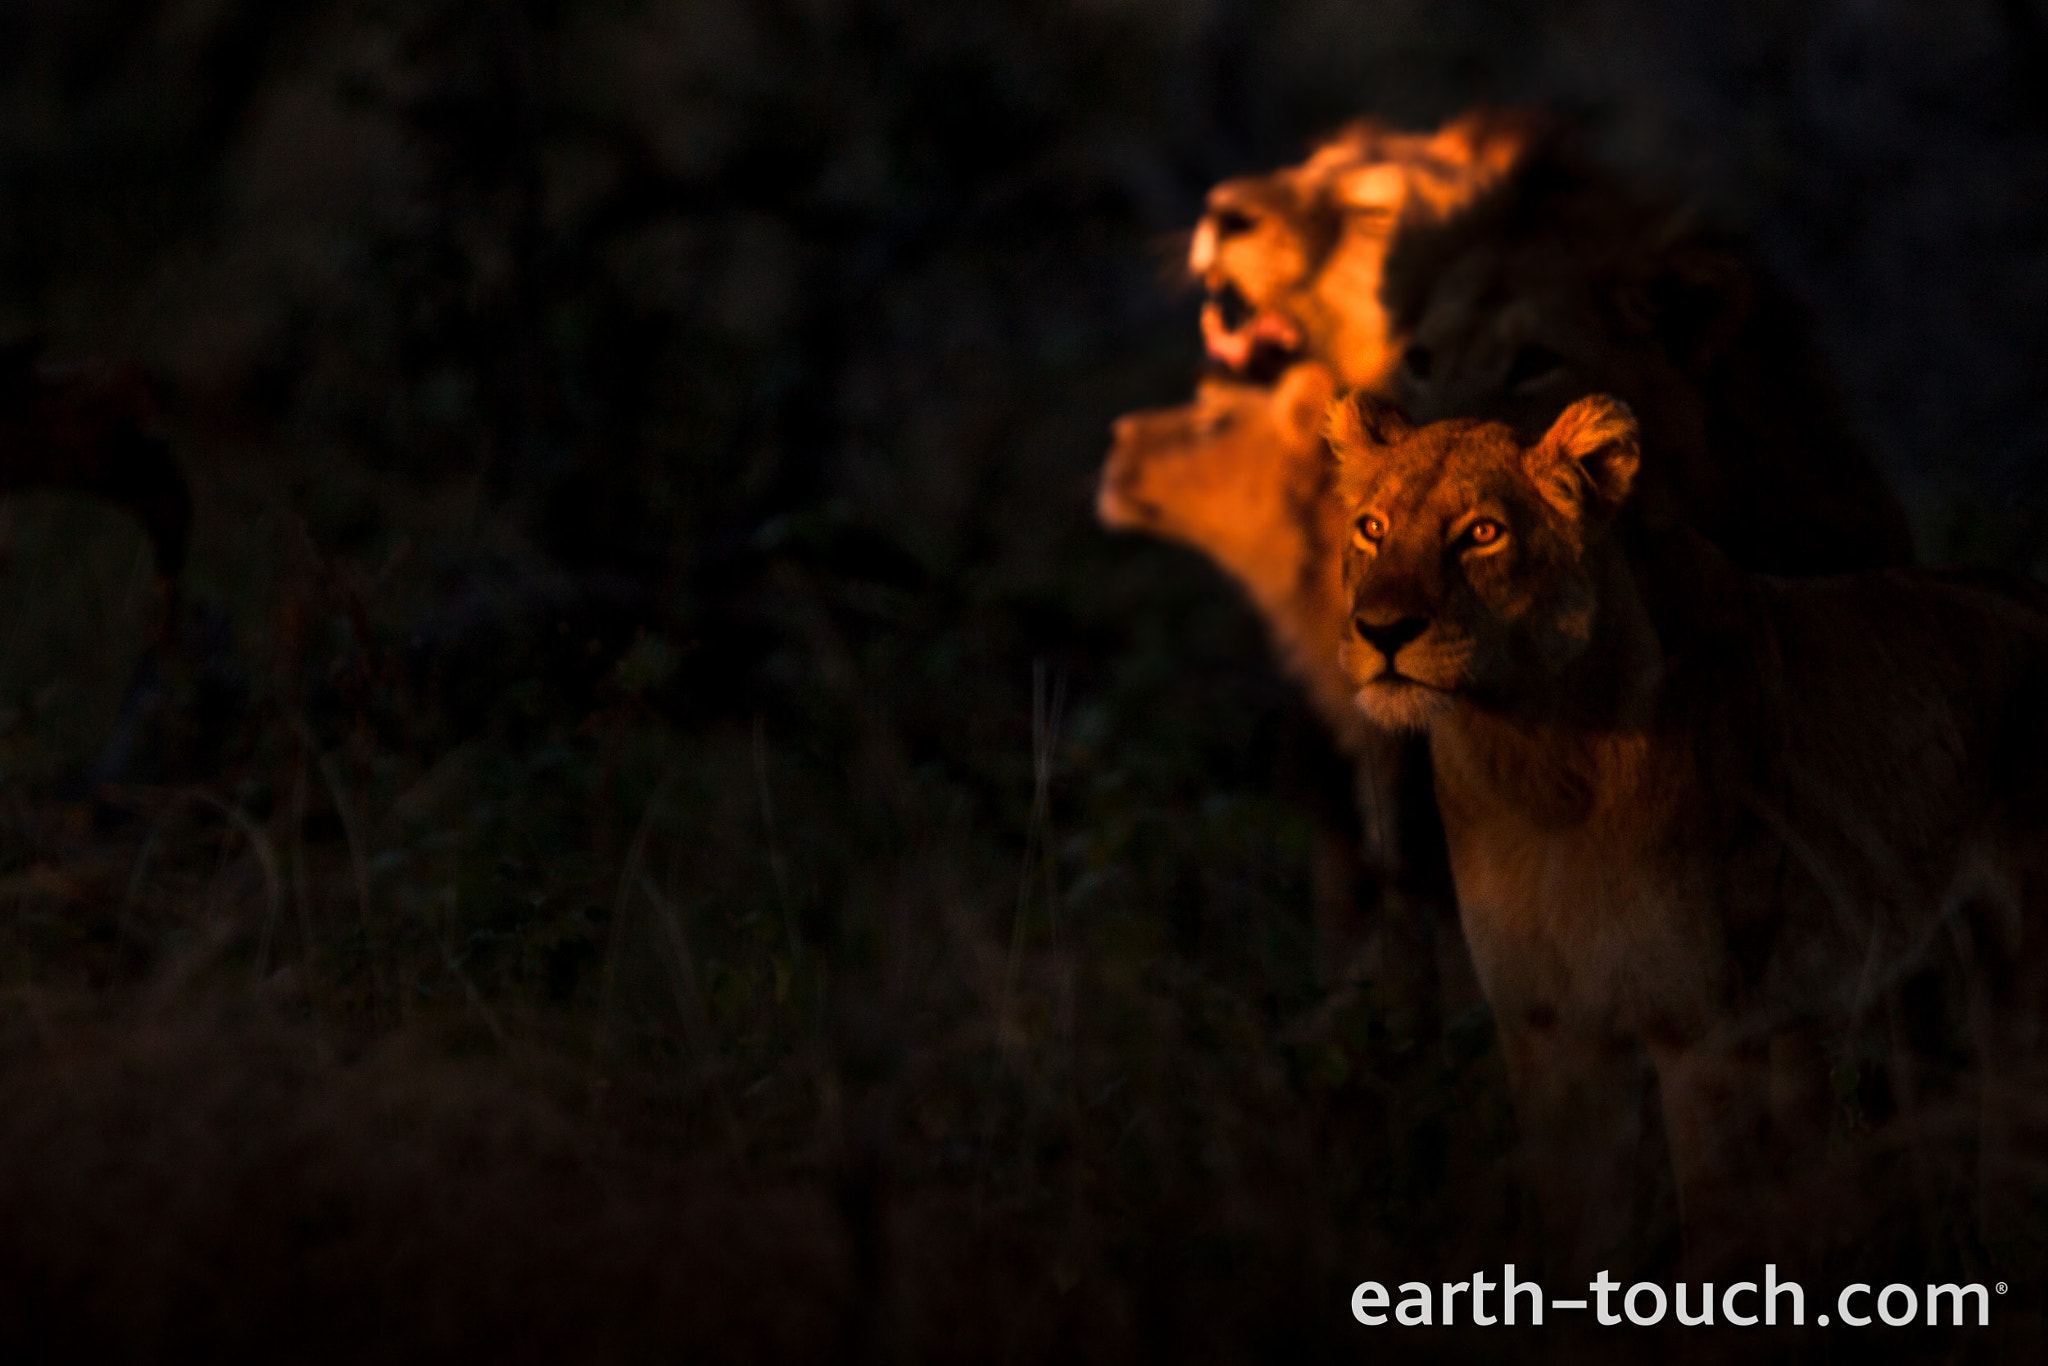 Photograph A Moment Of Illumination by Earth Touch on 500px